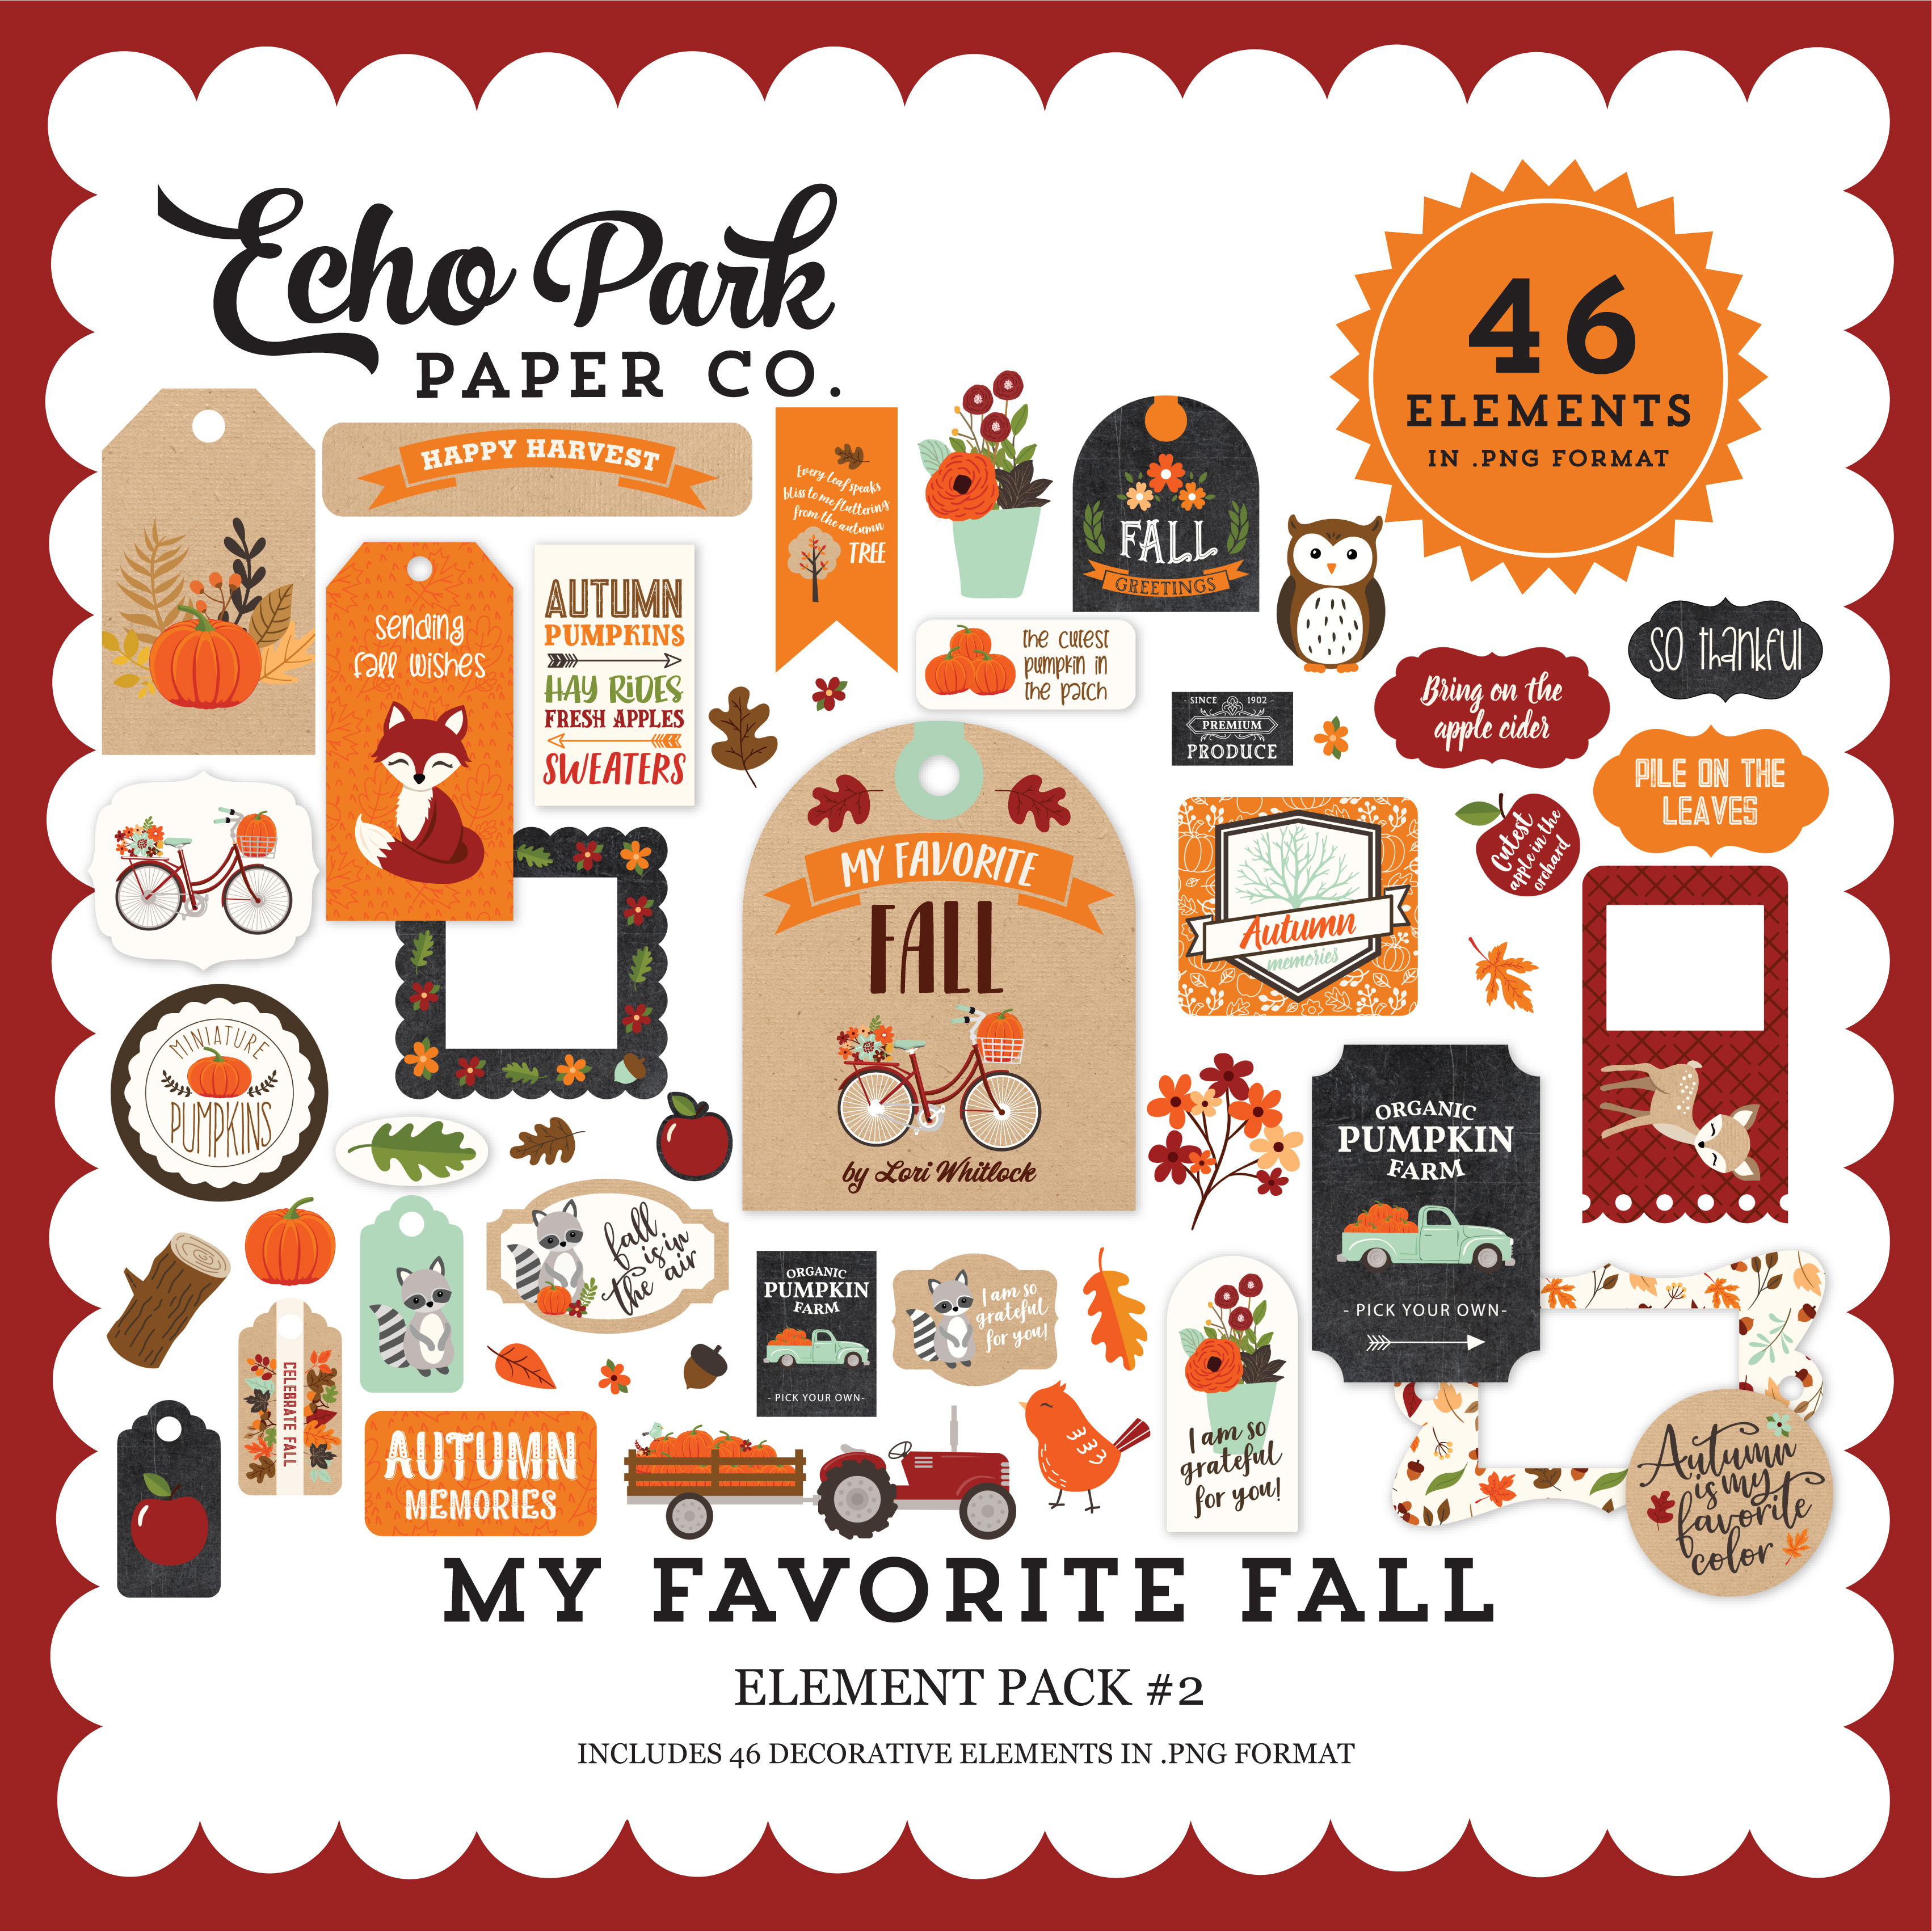 My Favorite Fall Element Pack #2